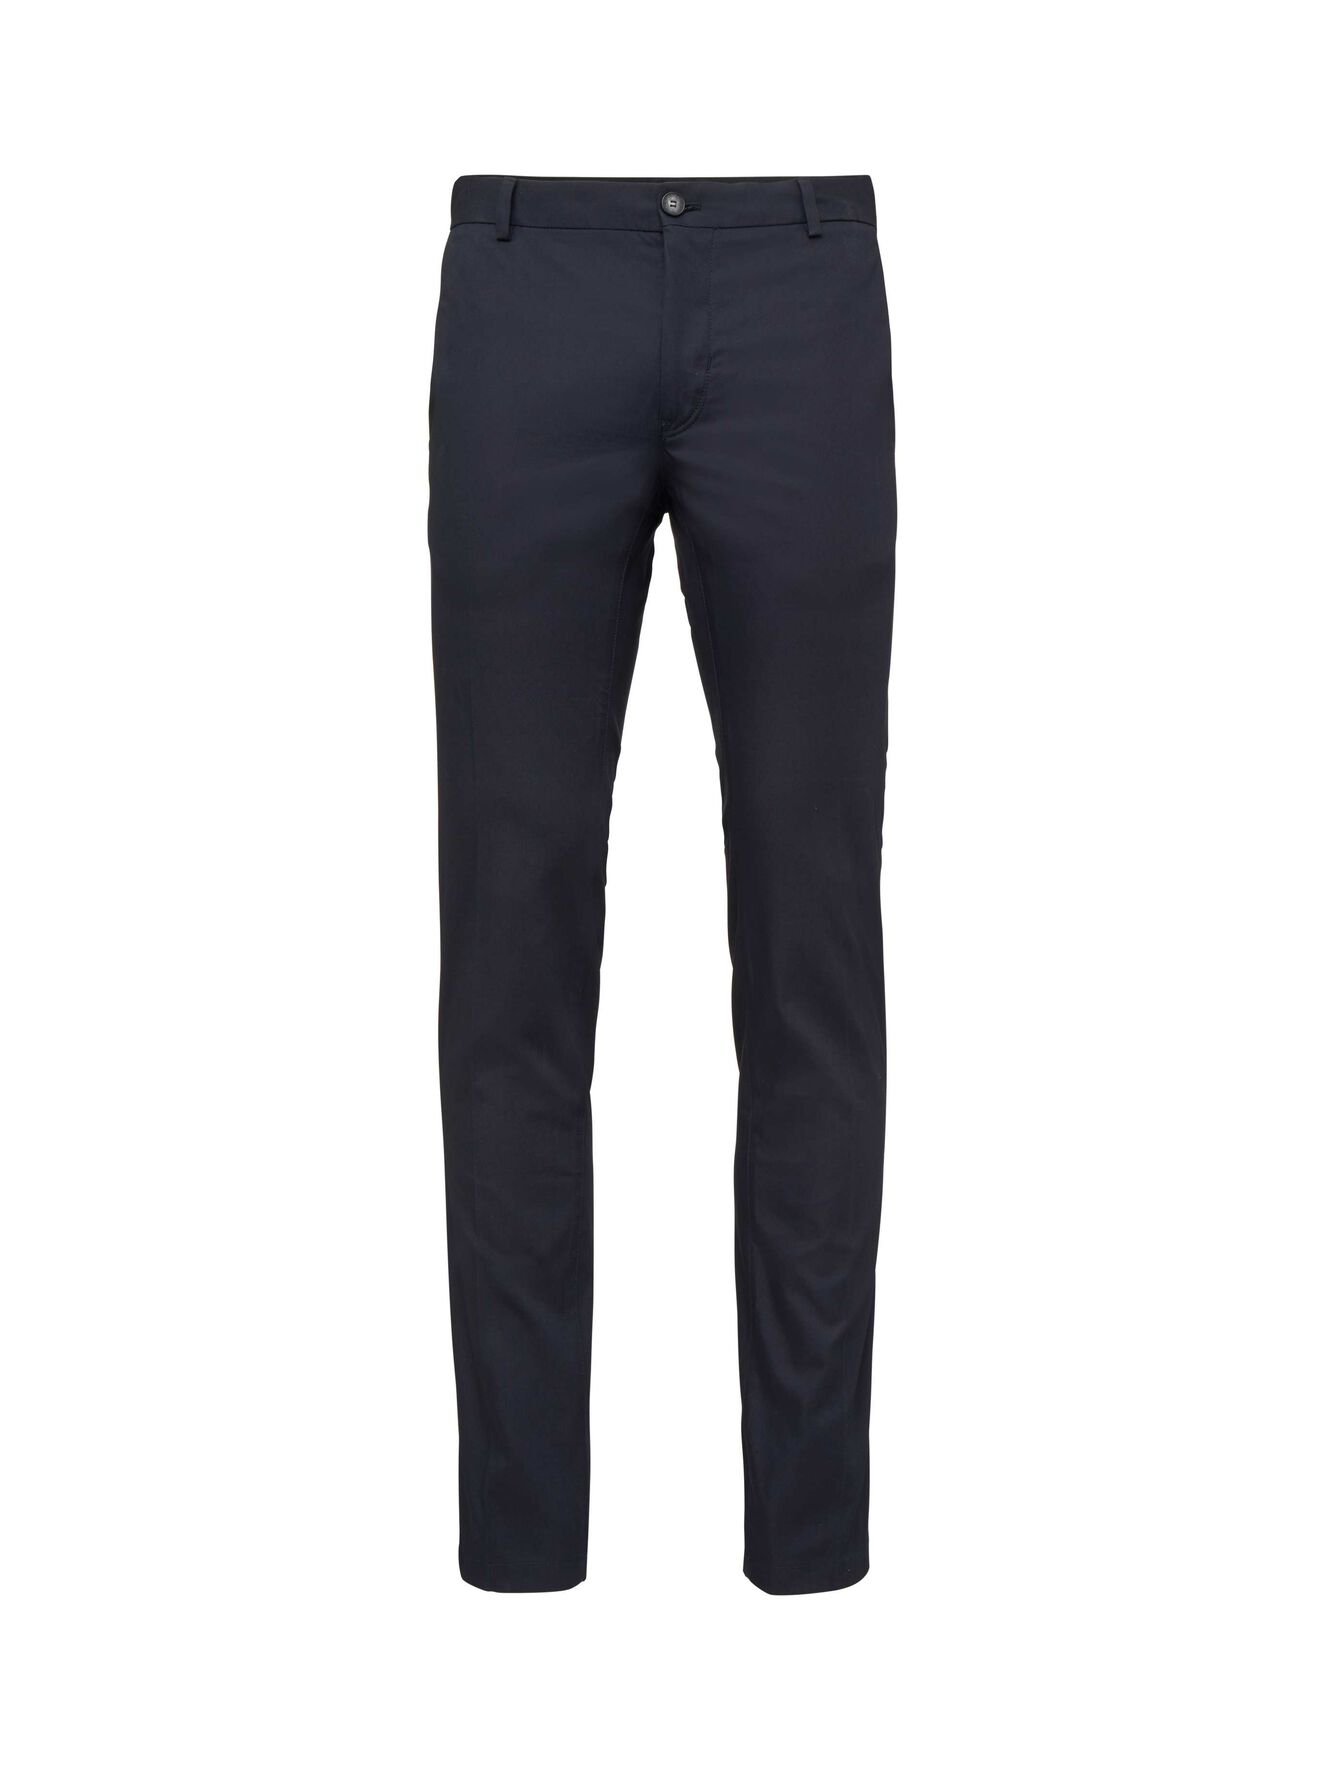 Rodman Trousers in Outer Blue from Tiger of Sweden